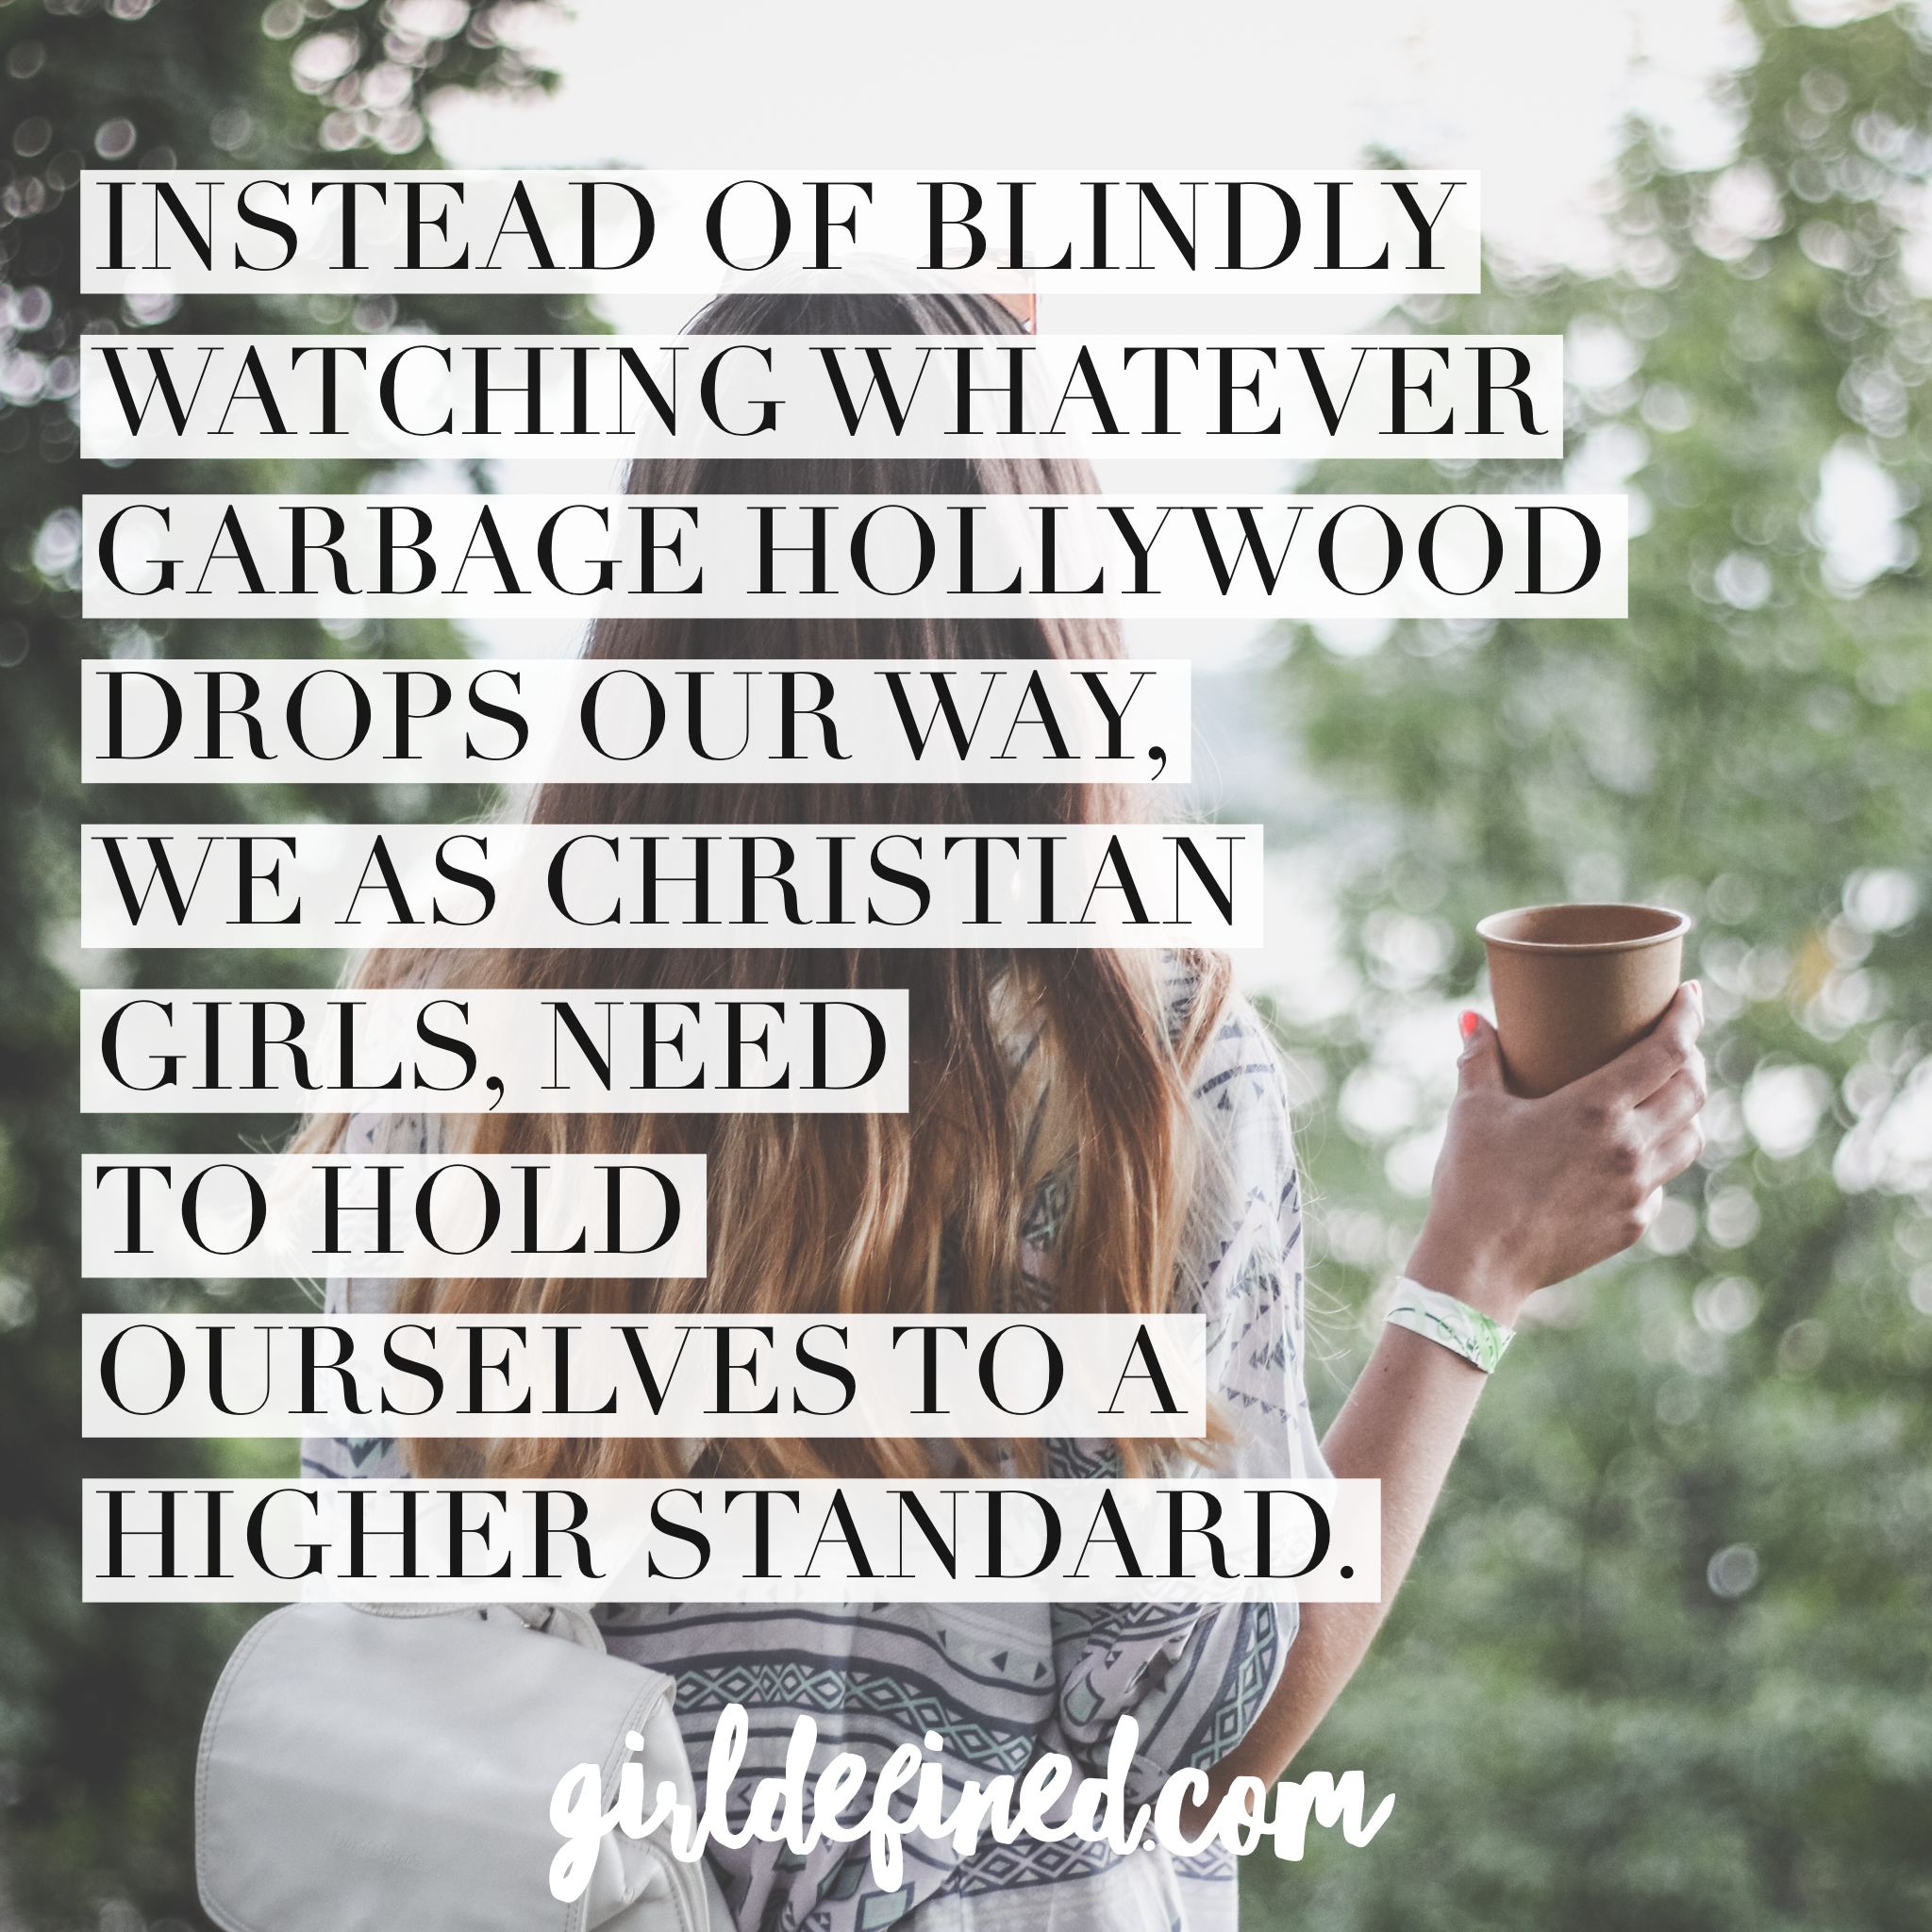 Hollywood Love Quotes: Instead Of Blindly Watching Whatever Garbage Hollywood